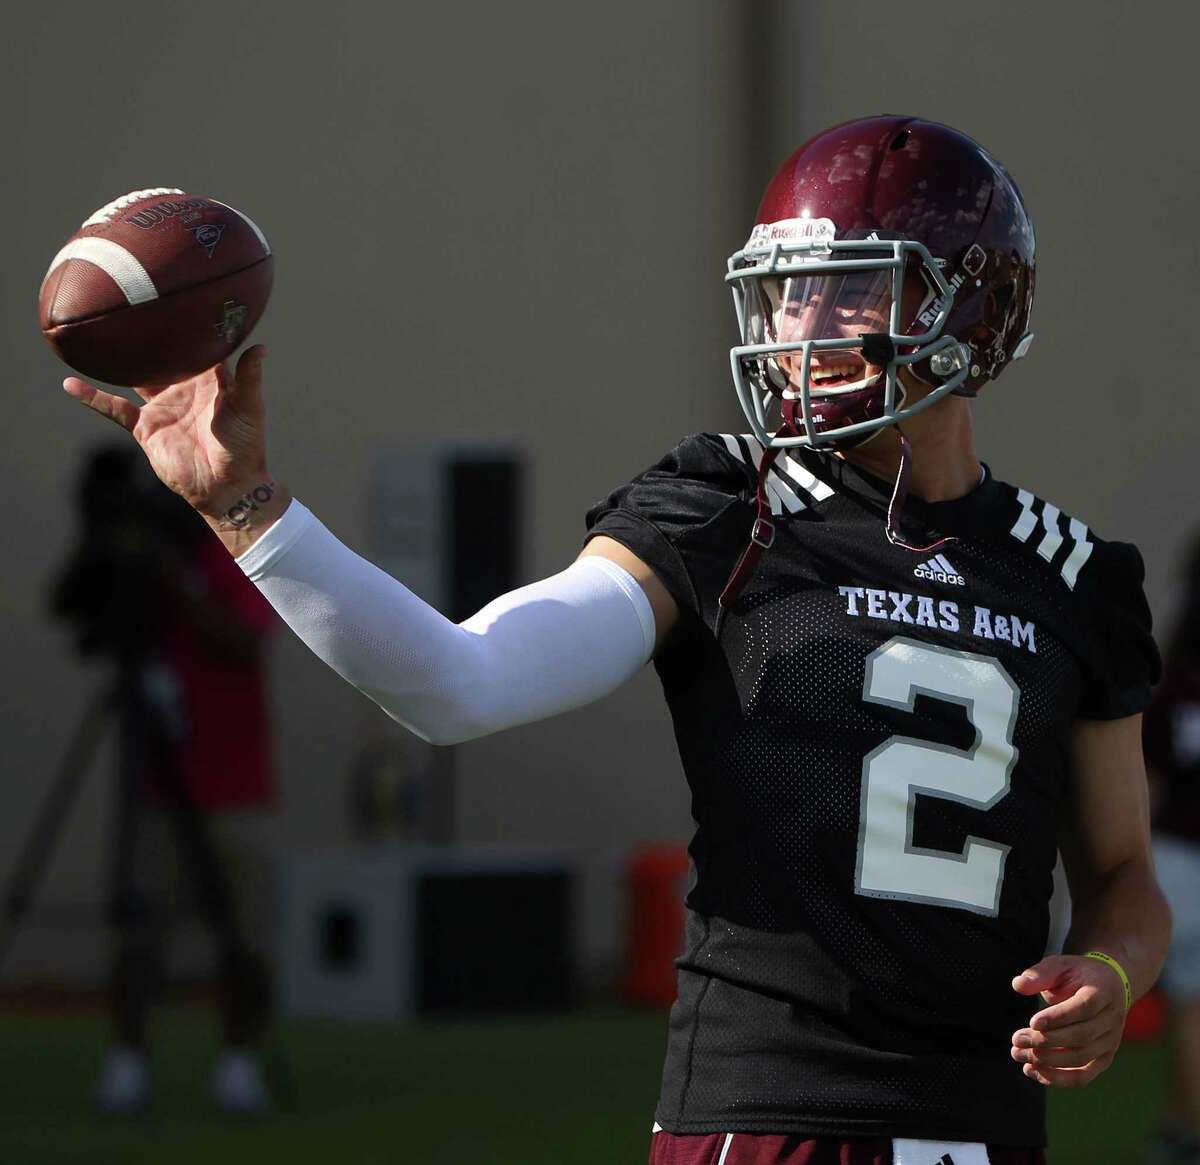 Texas A&M quarterback Johnny Manziel (2) prepares to make a throw during Texas A&M's first workout, Monday, Aug. 5, 2013, in College Station.